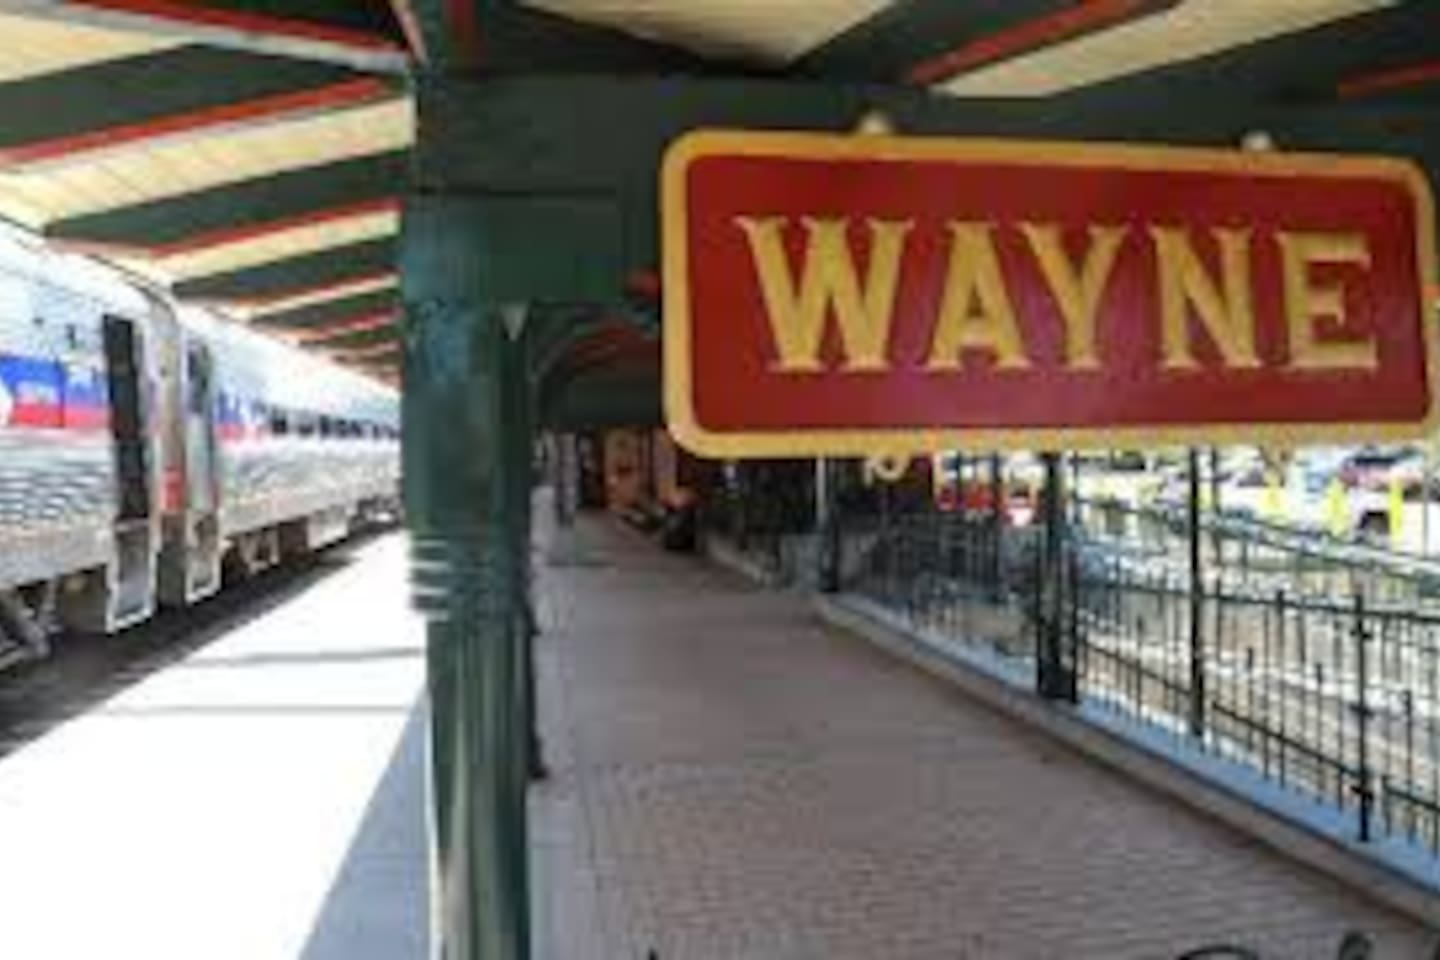 Walking distance to Wayne Train Station - 35 min ride to Philadelphia